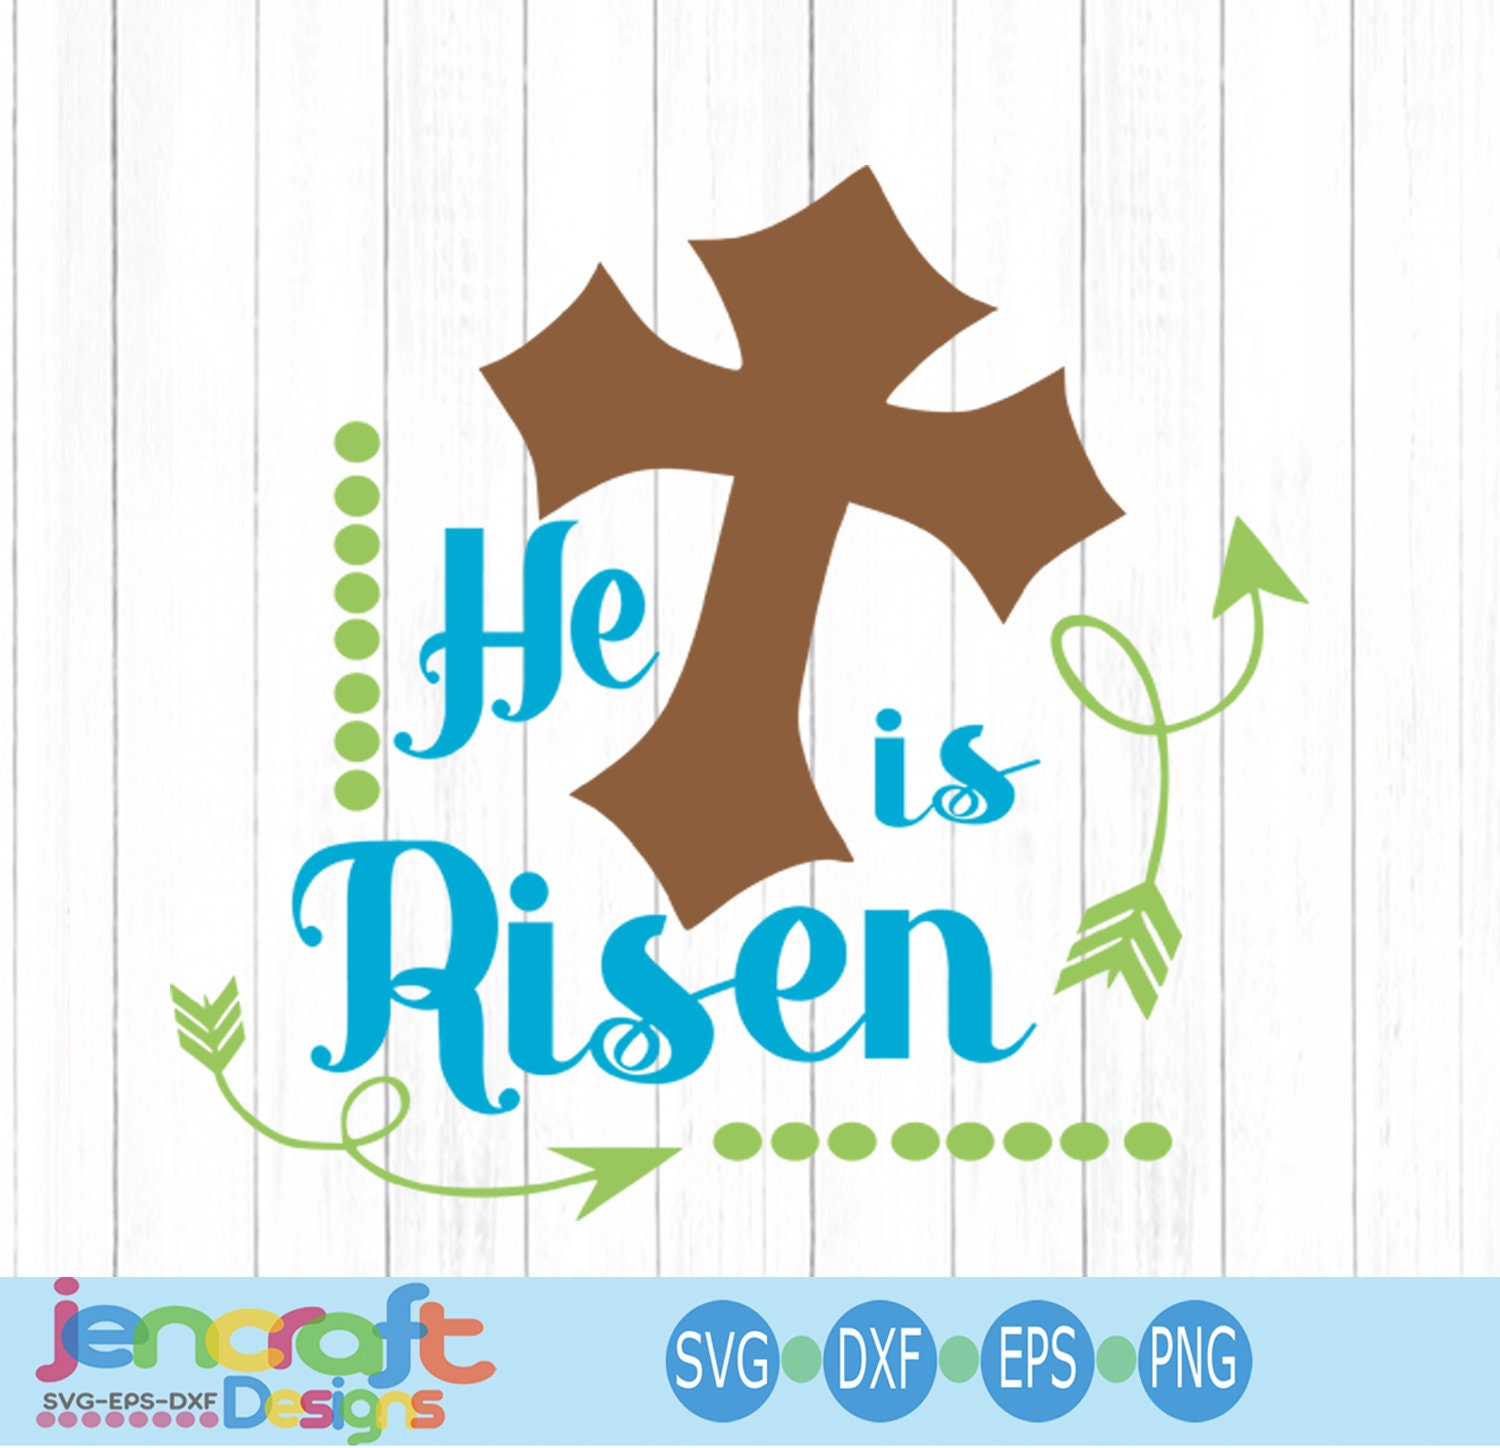 Christian Easter Svg He Is Risen Svg Christian Svg Jesus Svg Eps Dxf Png Svg Files For Cricut Cut Files For Silhouette Instant Download